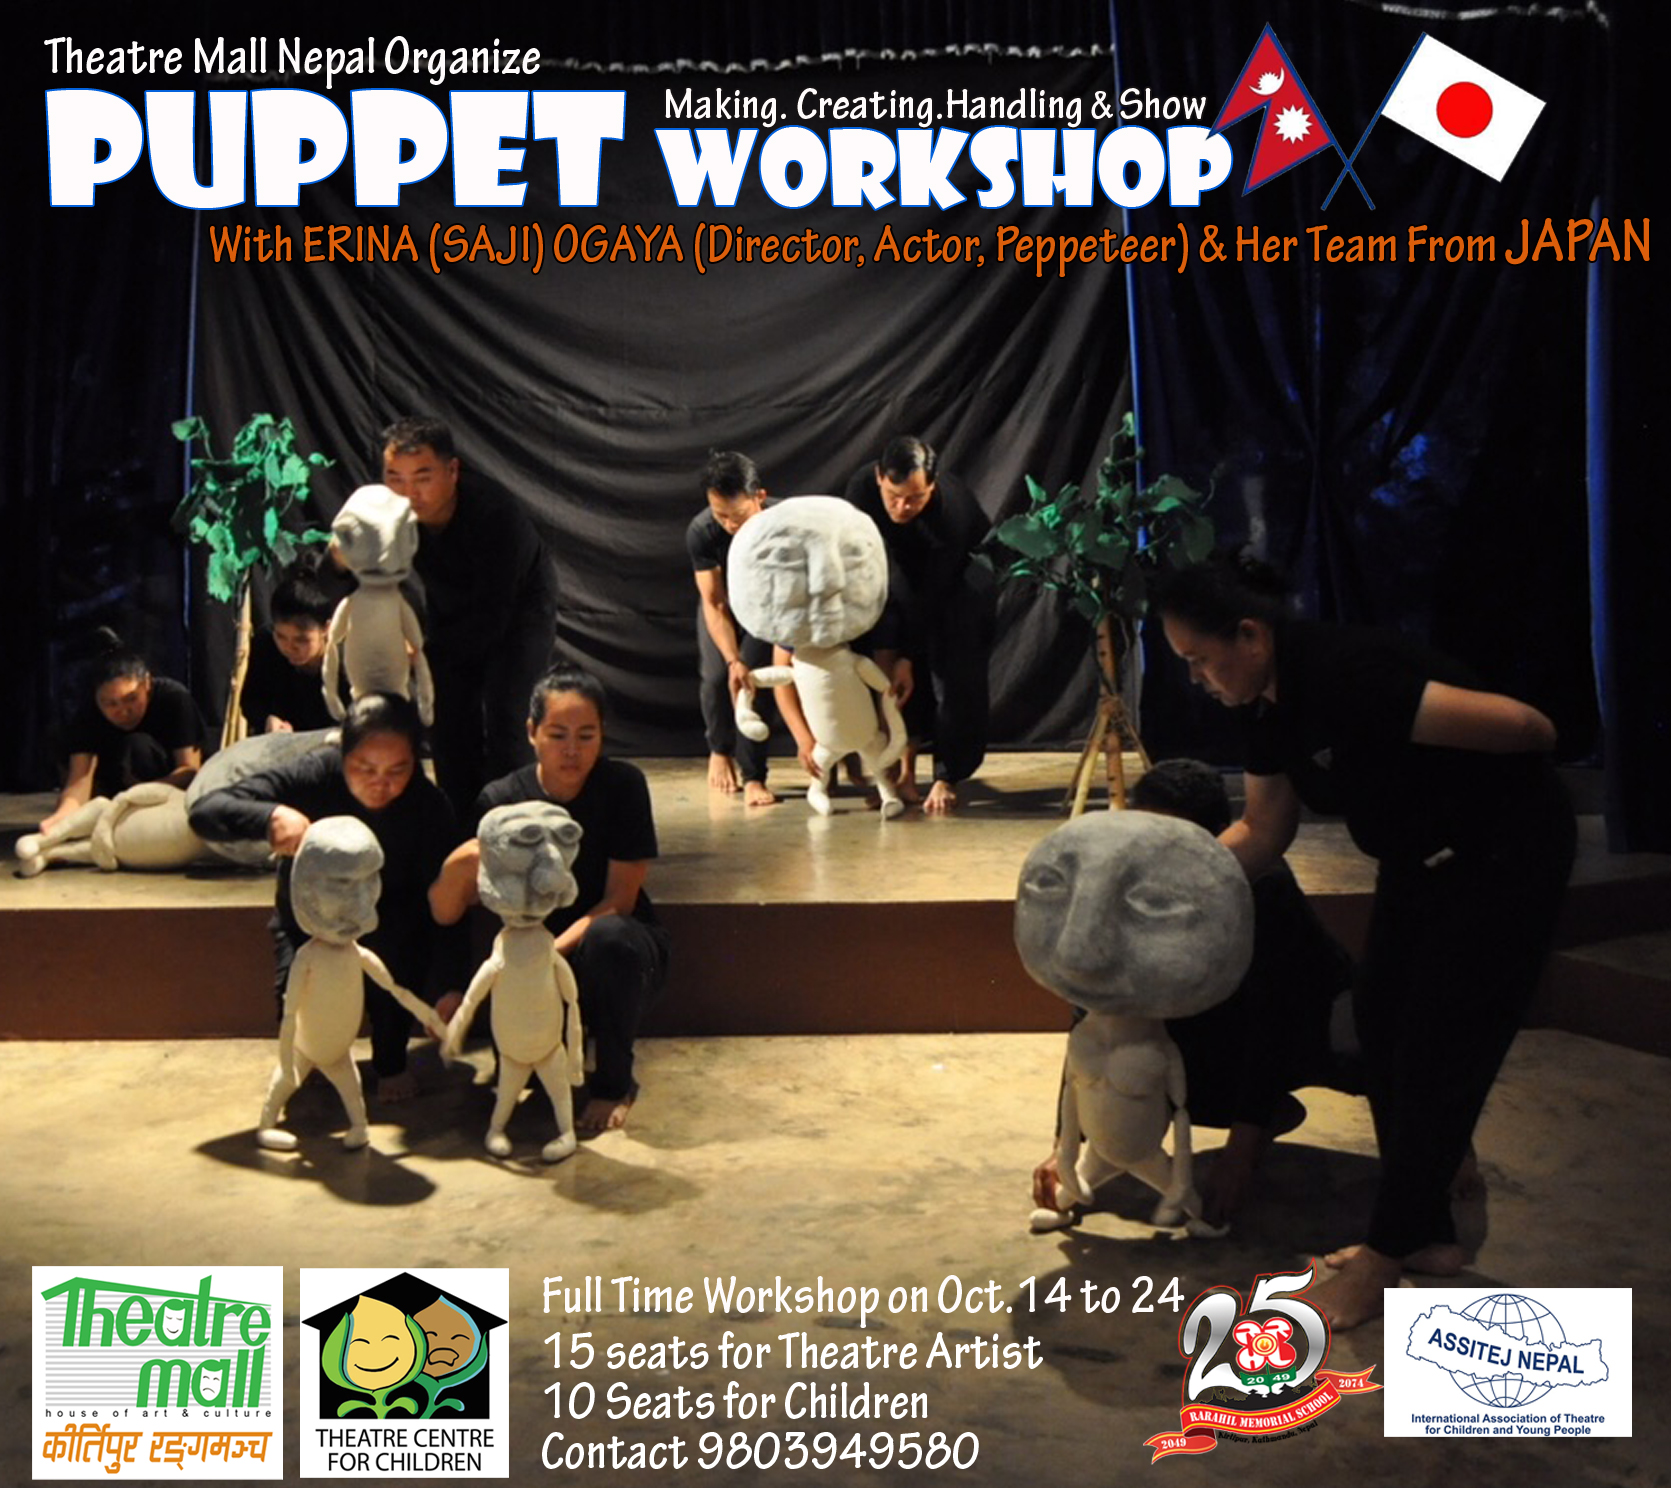 <p>Puppet Workshop from Japanese Artist</p>